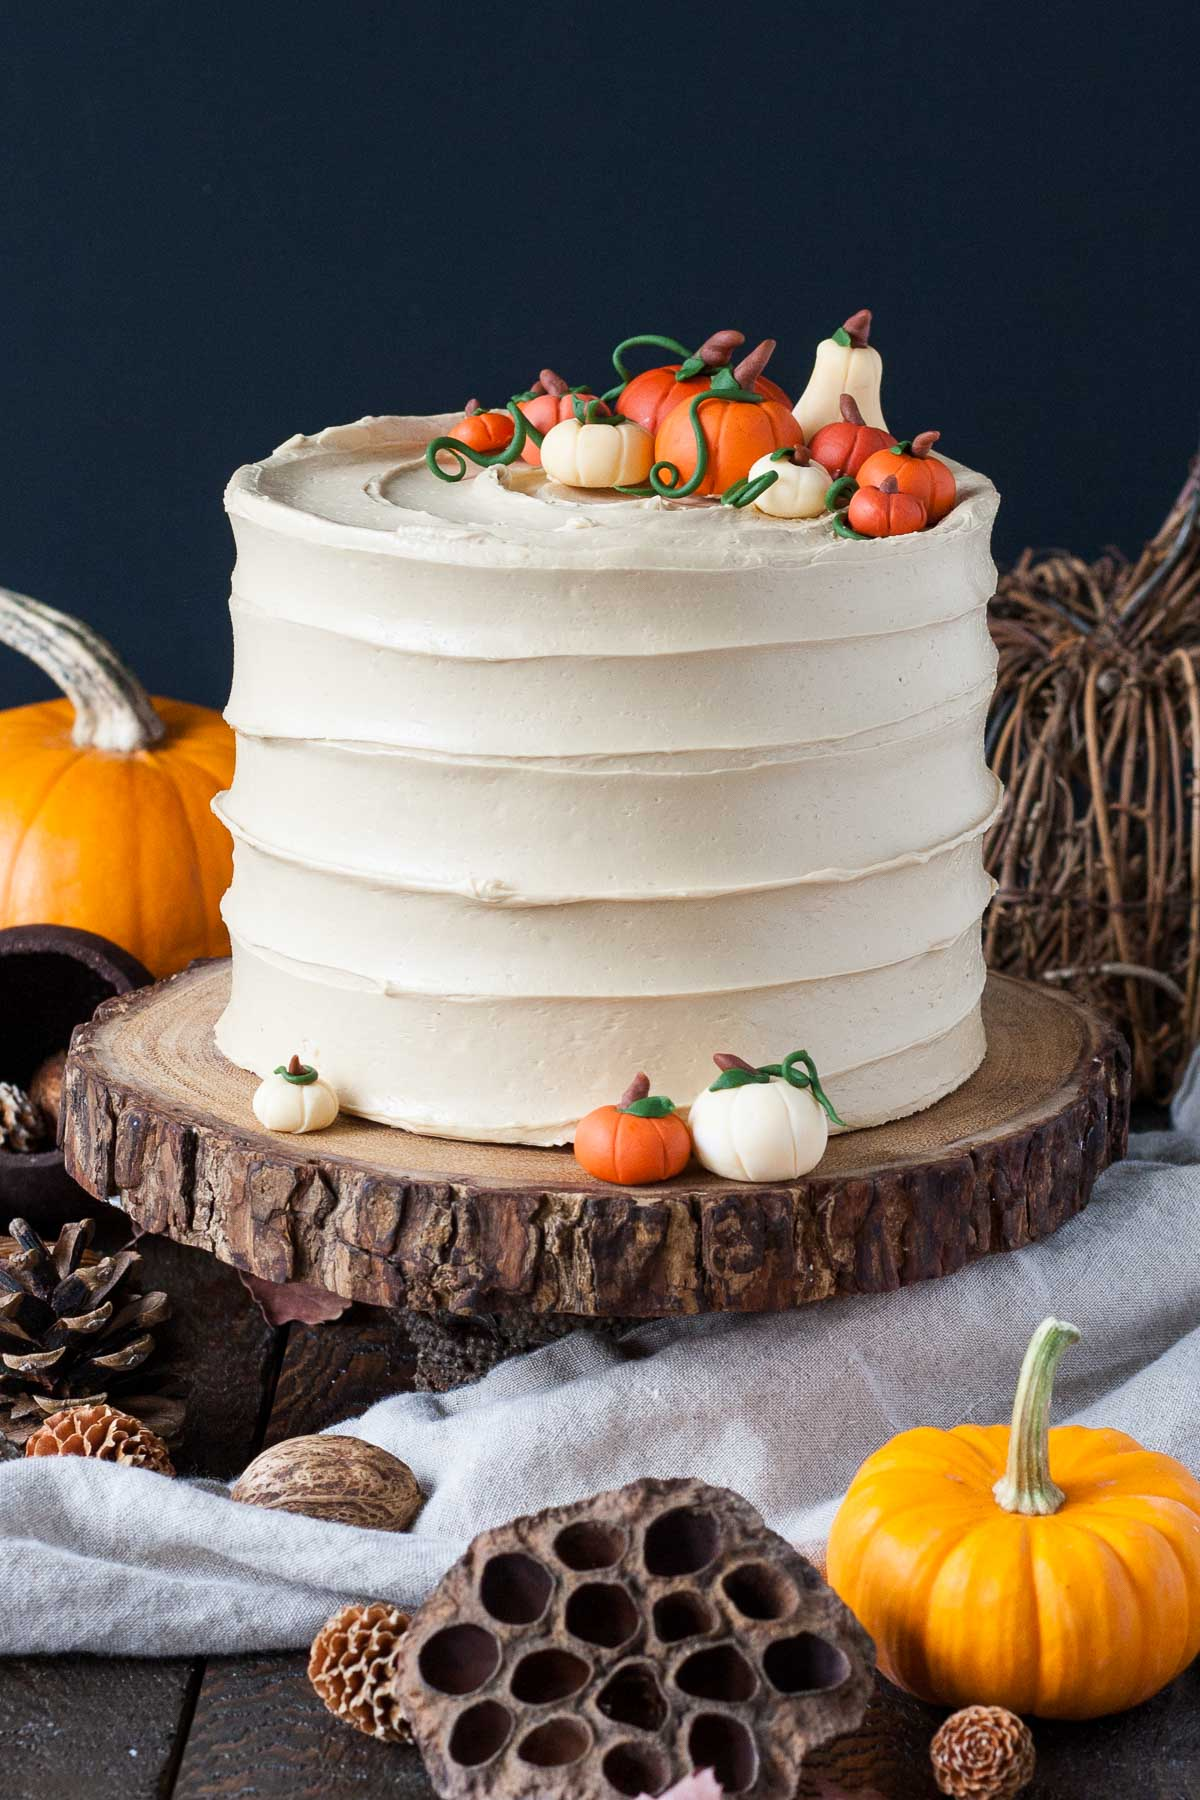 Pumpkin Spice Latte Cake with fondant pumpkins